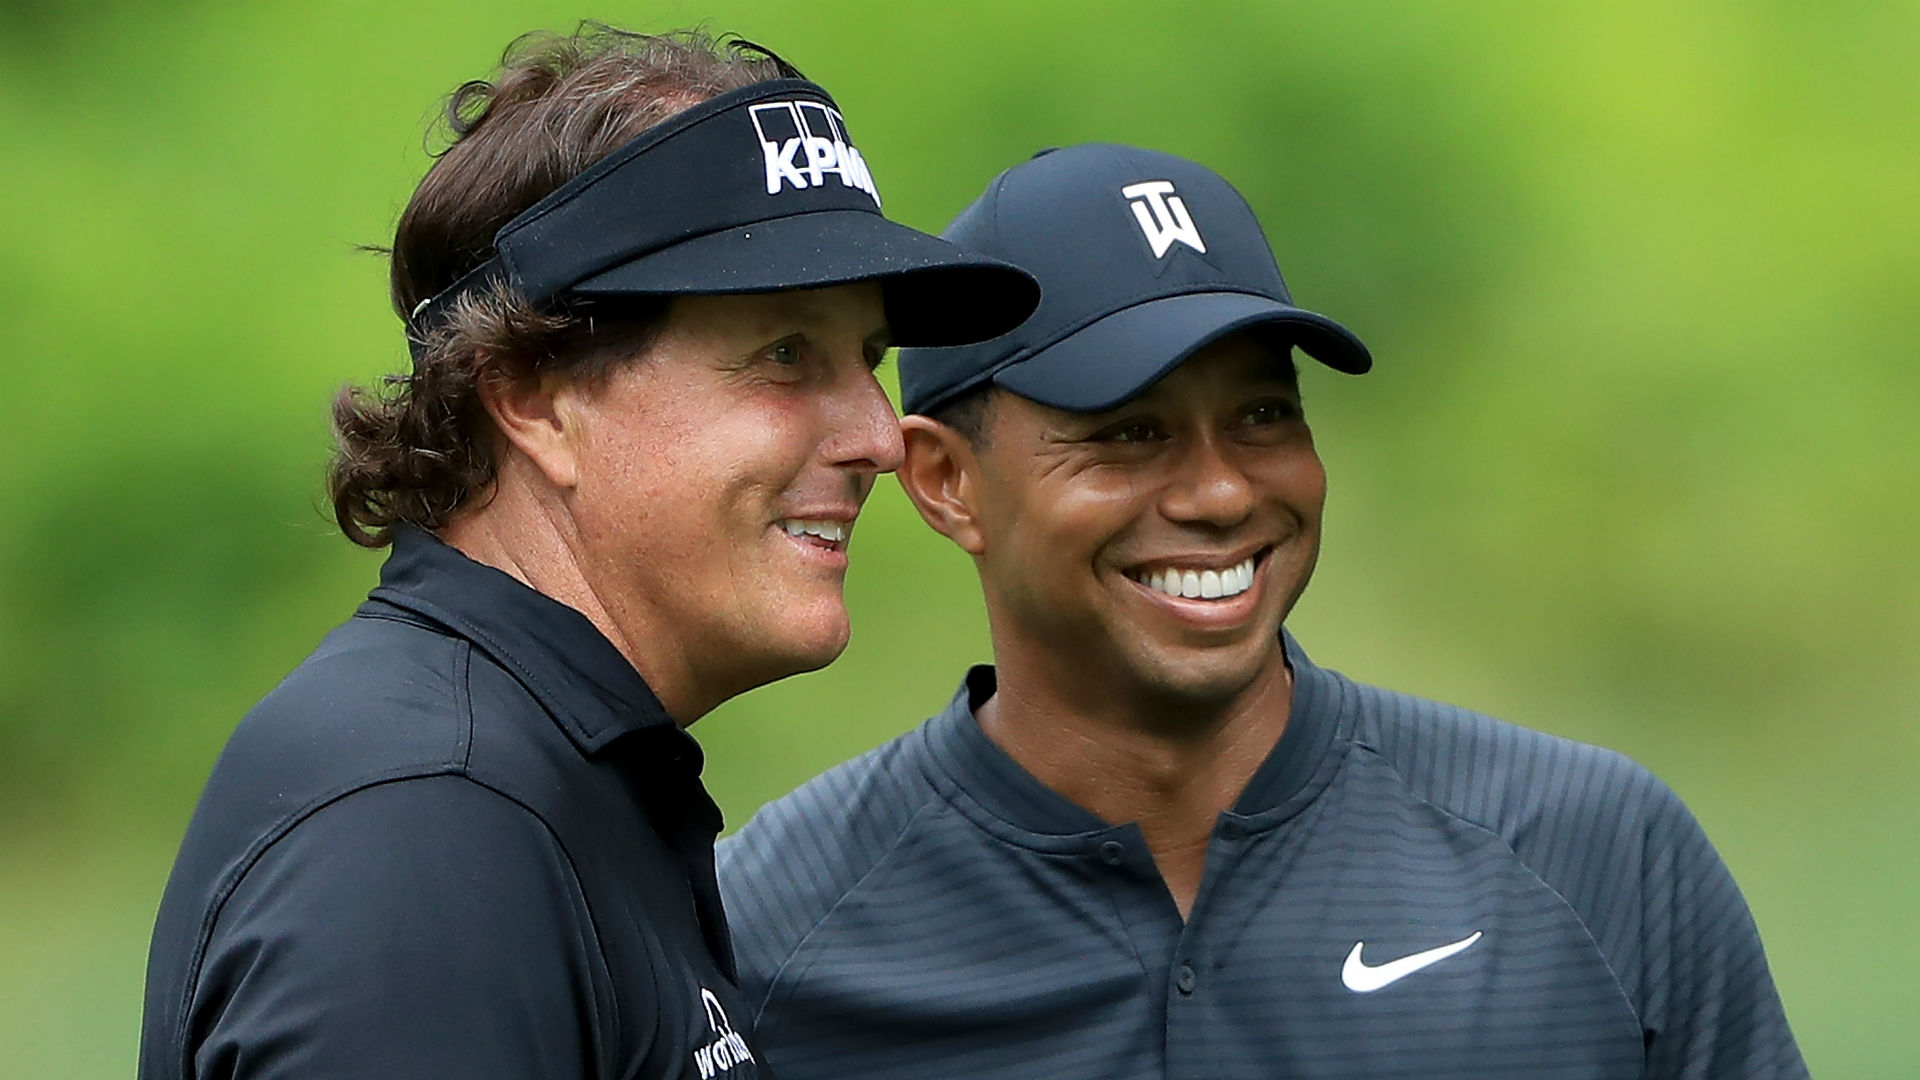 Tiger motivated by Mickelson's success